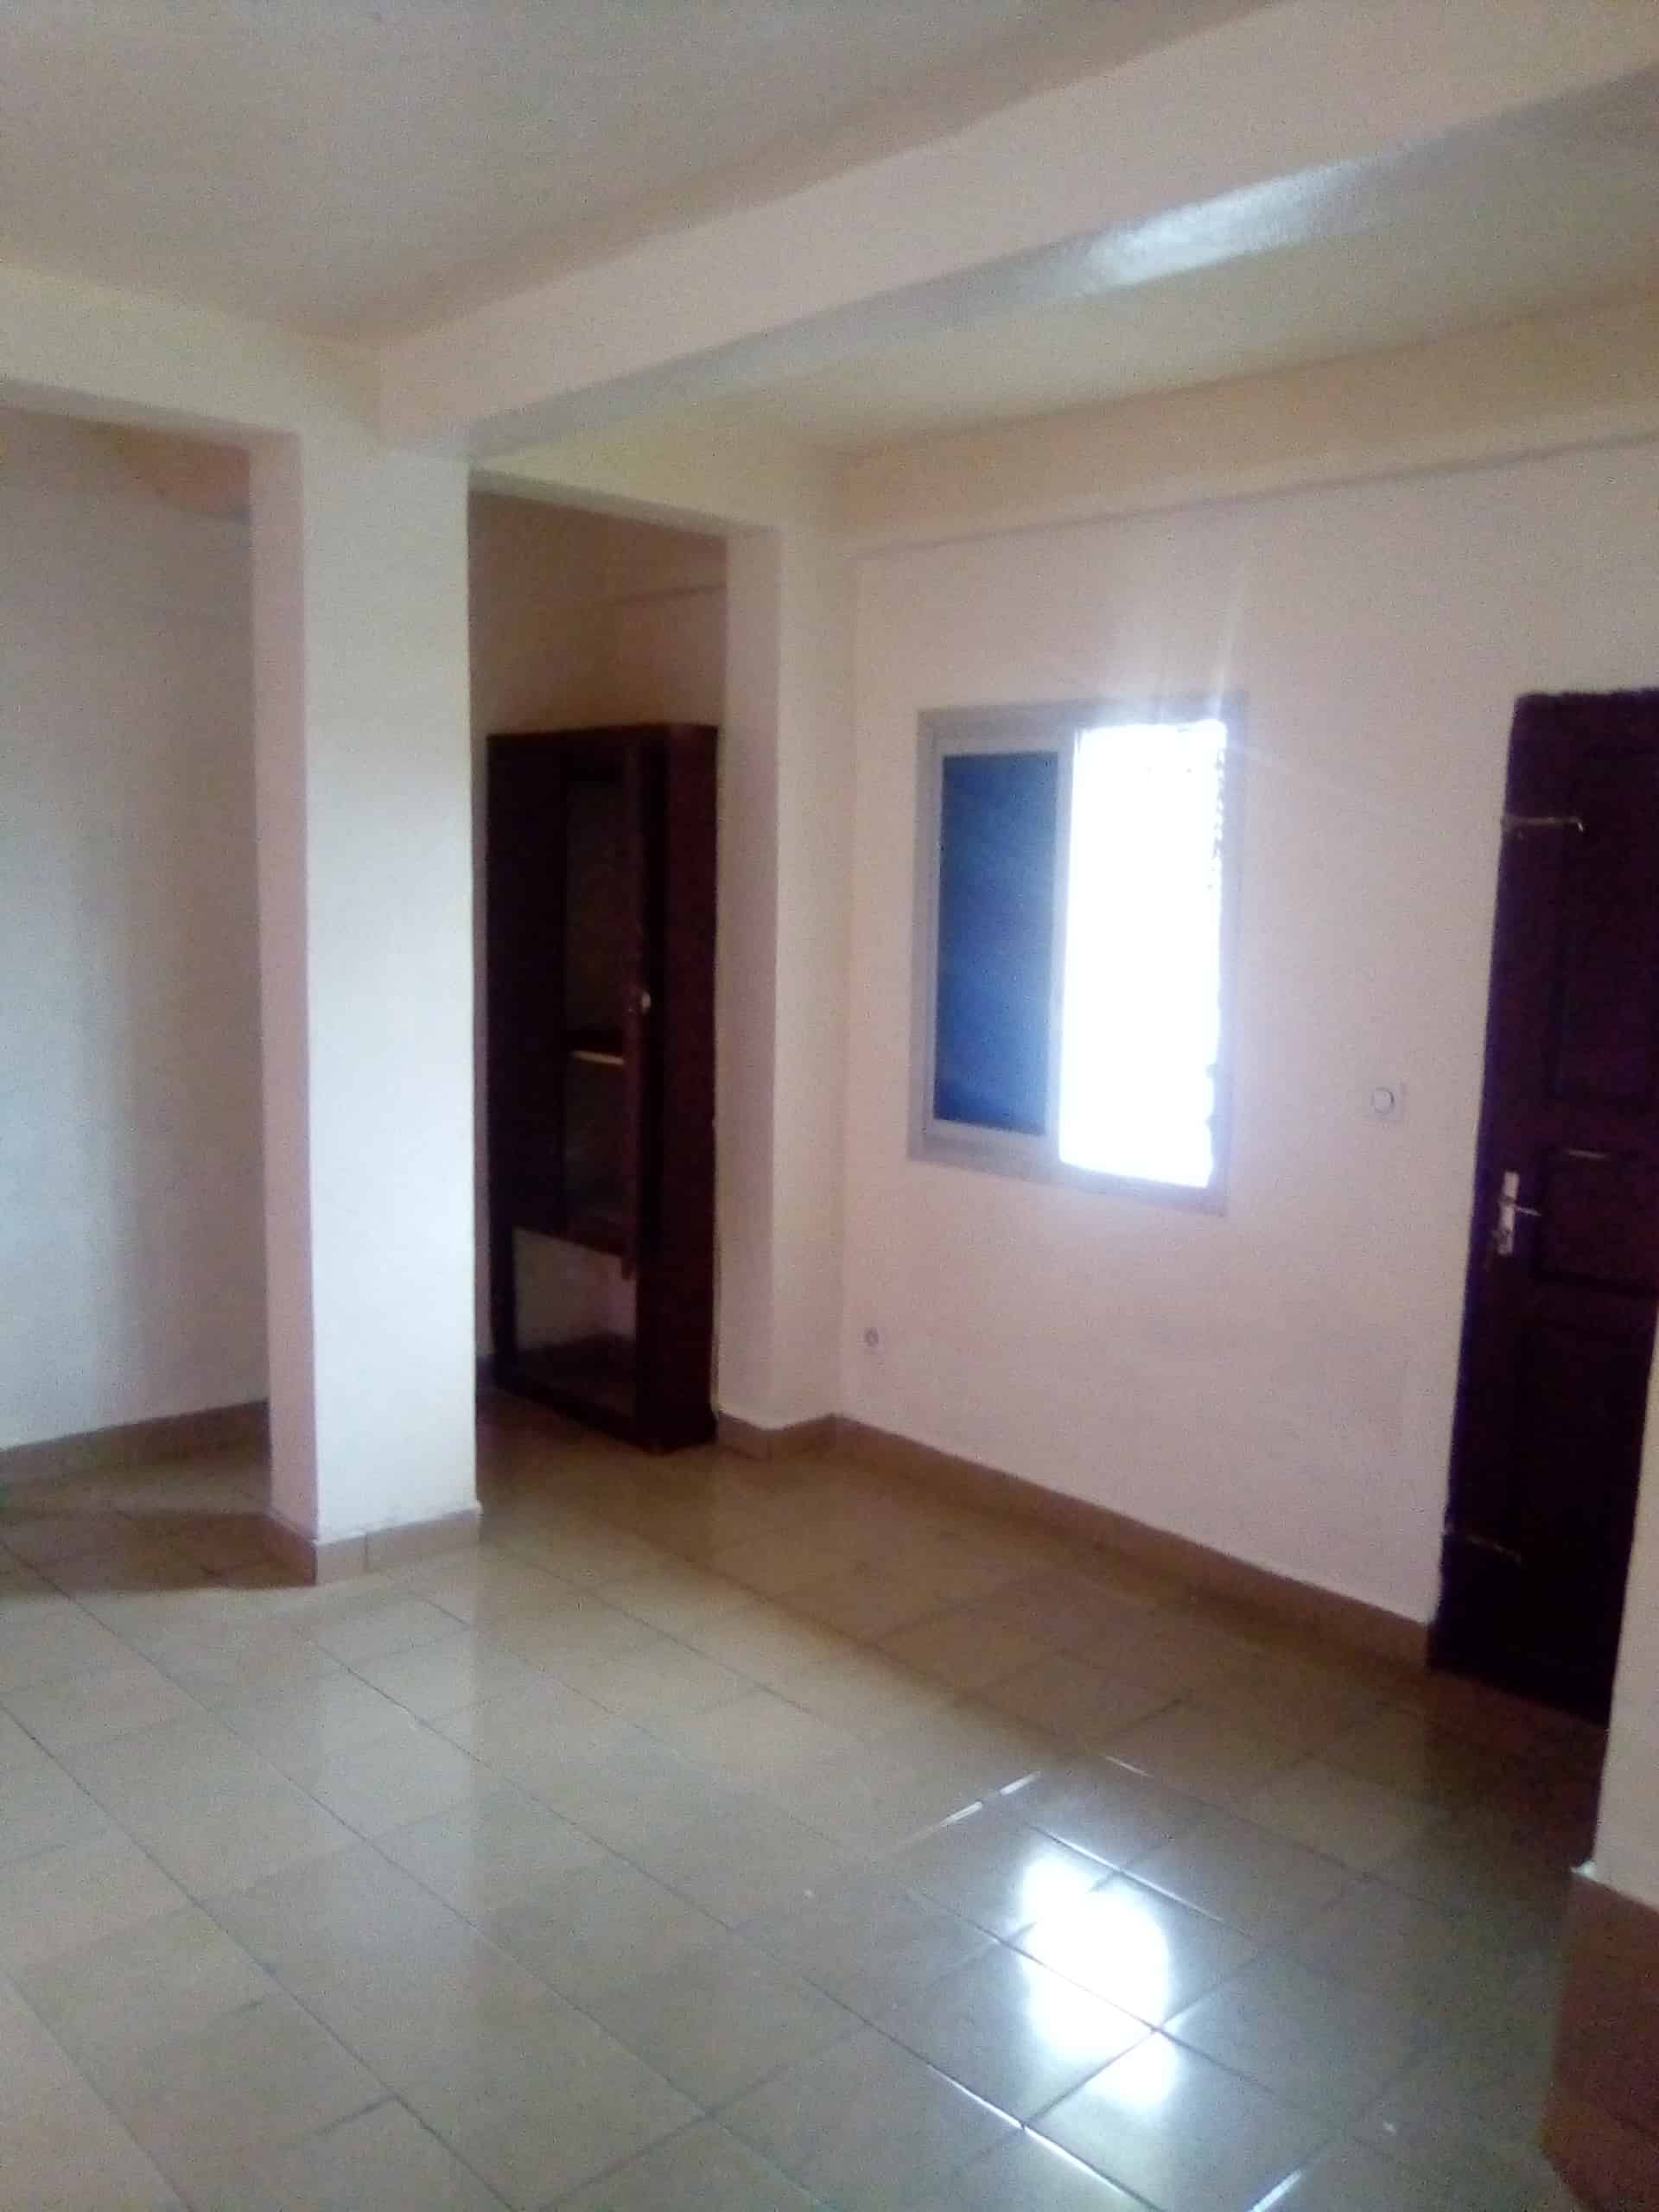 Studio to rent - Douala, Ndoghem, Ange Raphaël, Carrefour IPAH - 50 000 FCFA / month